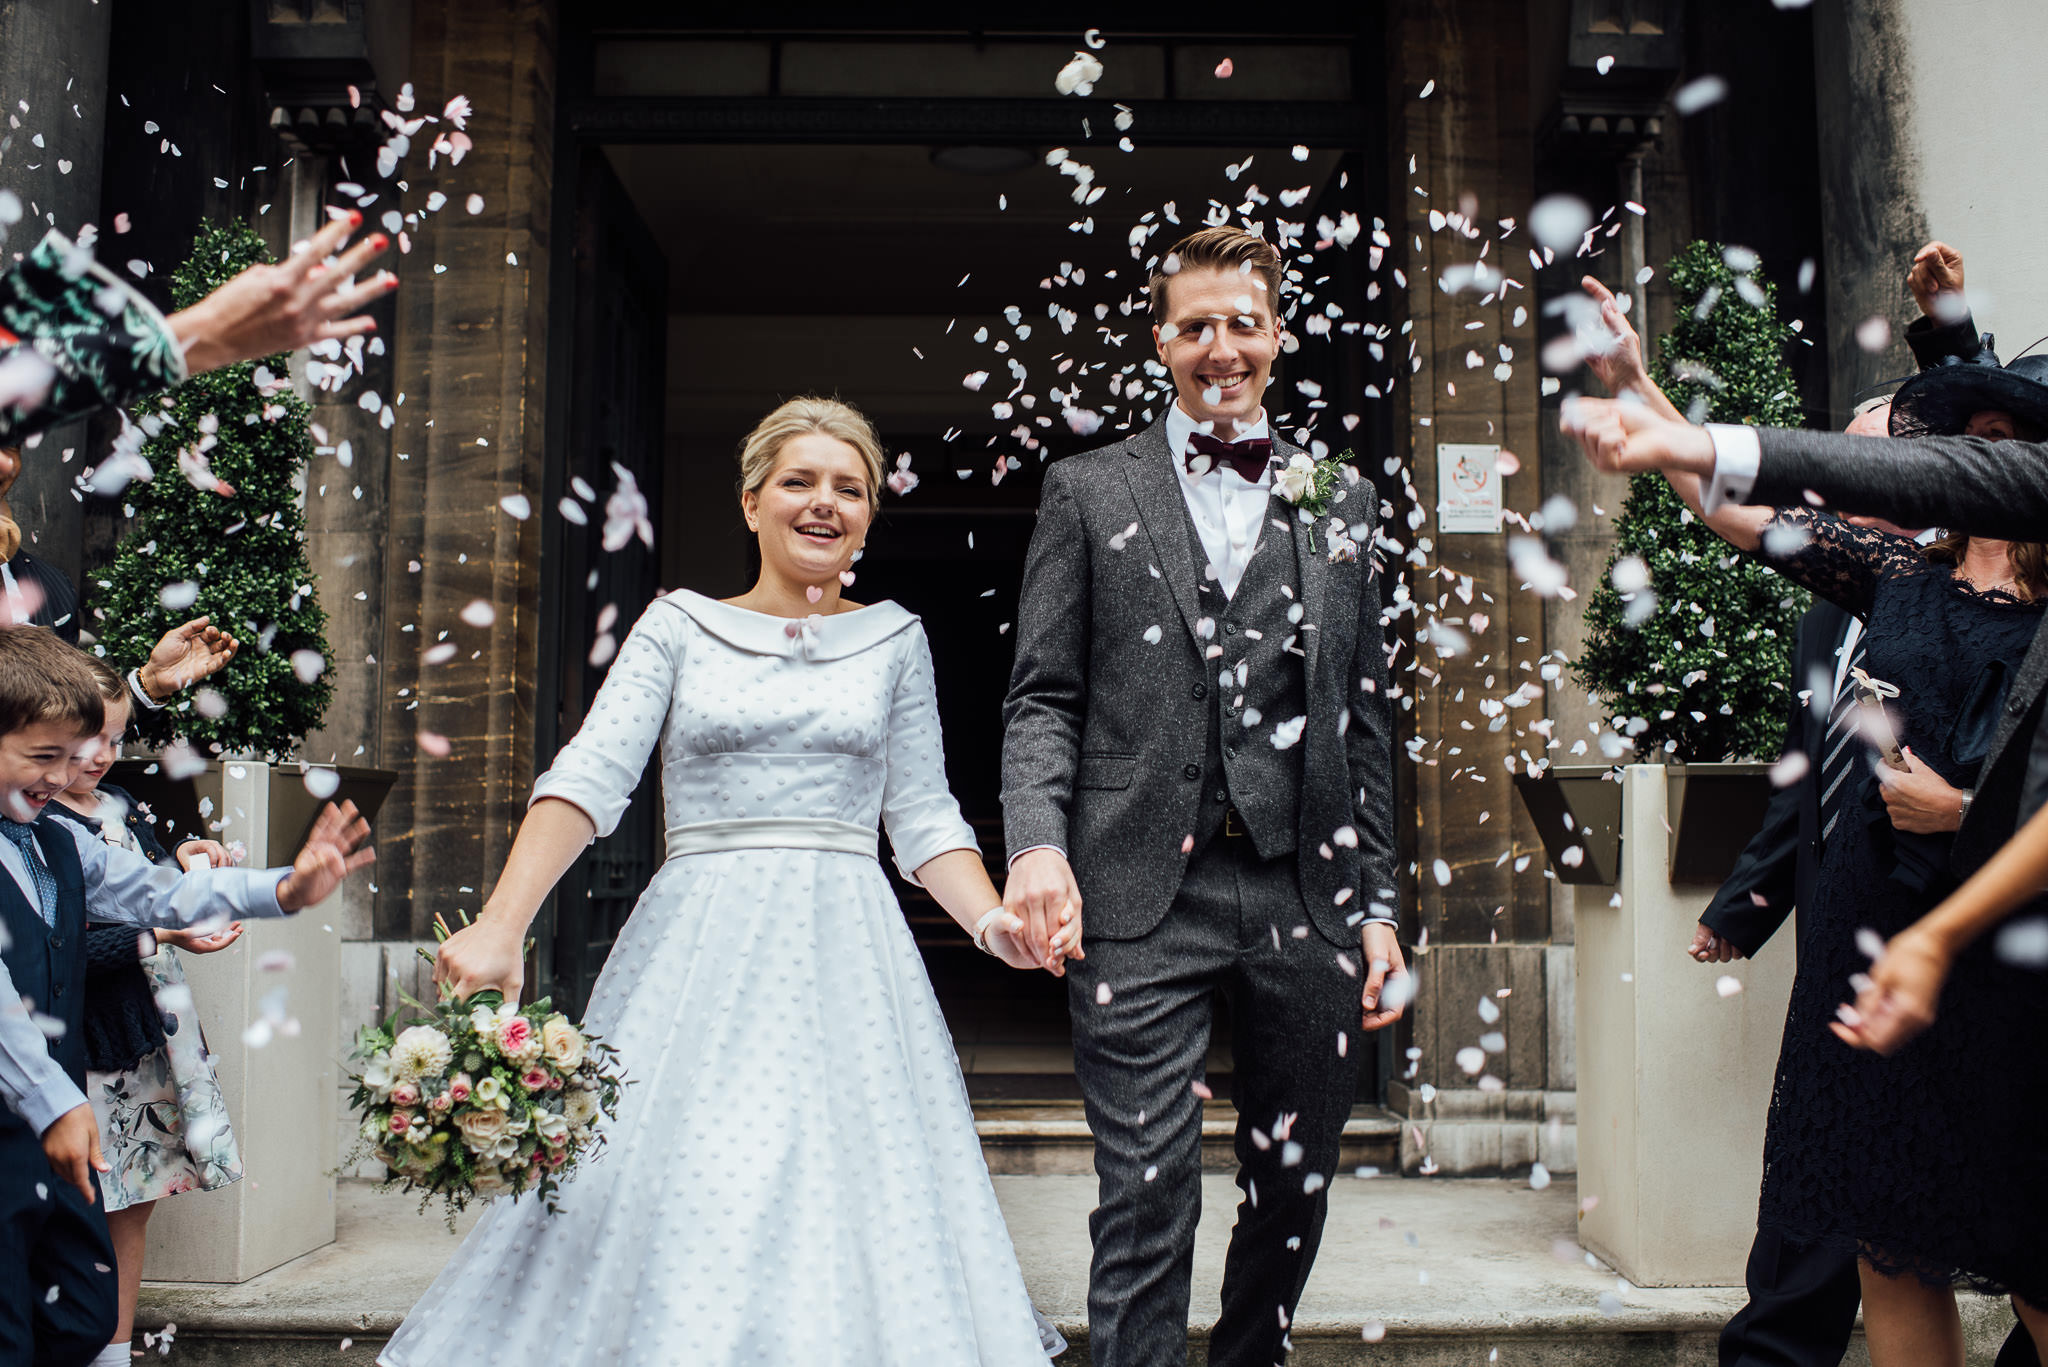 Alternative wedding in stoke newington town hall wedding by creative and alternative london wedding photographer the shannons photography